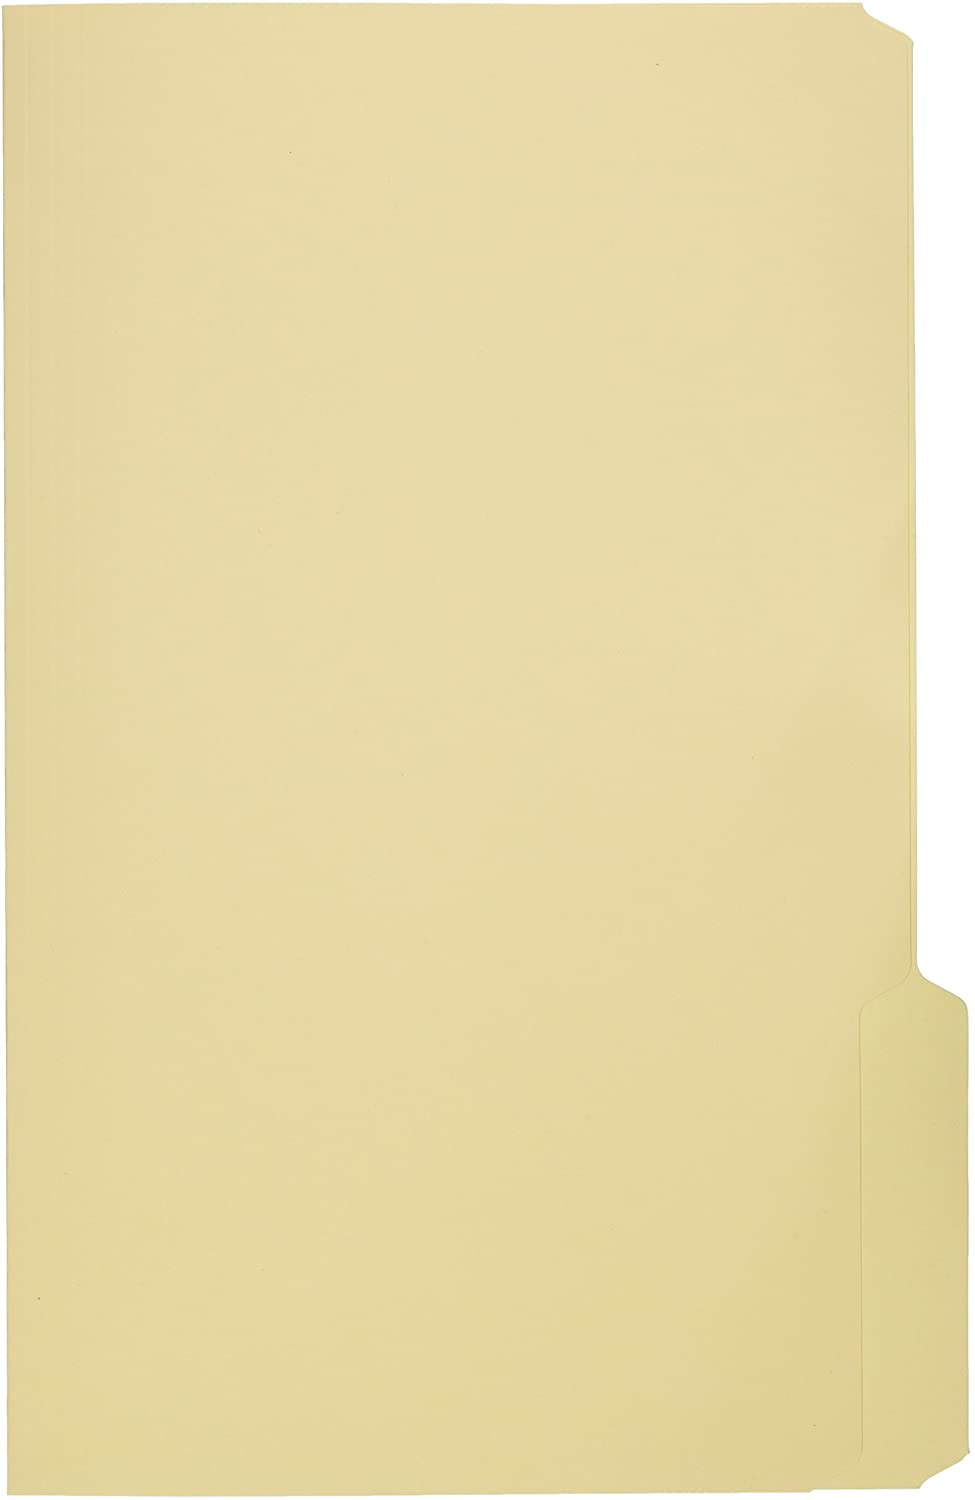 School Smart 1/3 Cut Manila File Folder, Legal, 14-3/4 x 9-1/2 Inches, Pack of 100